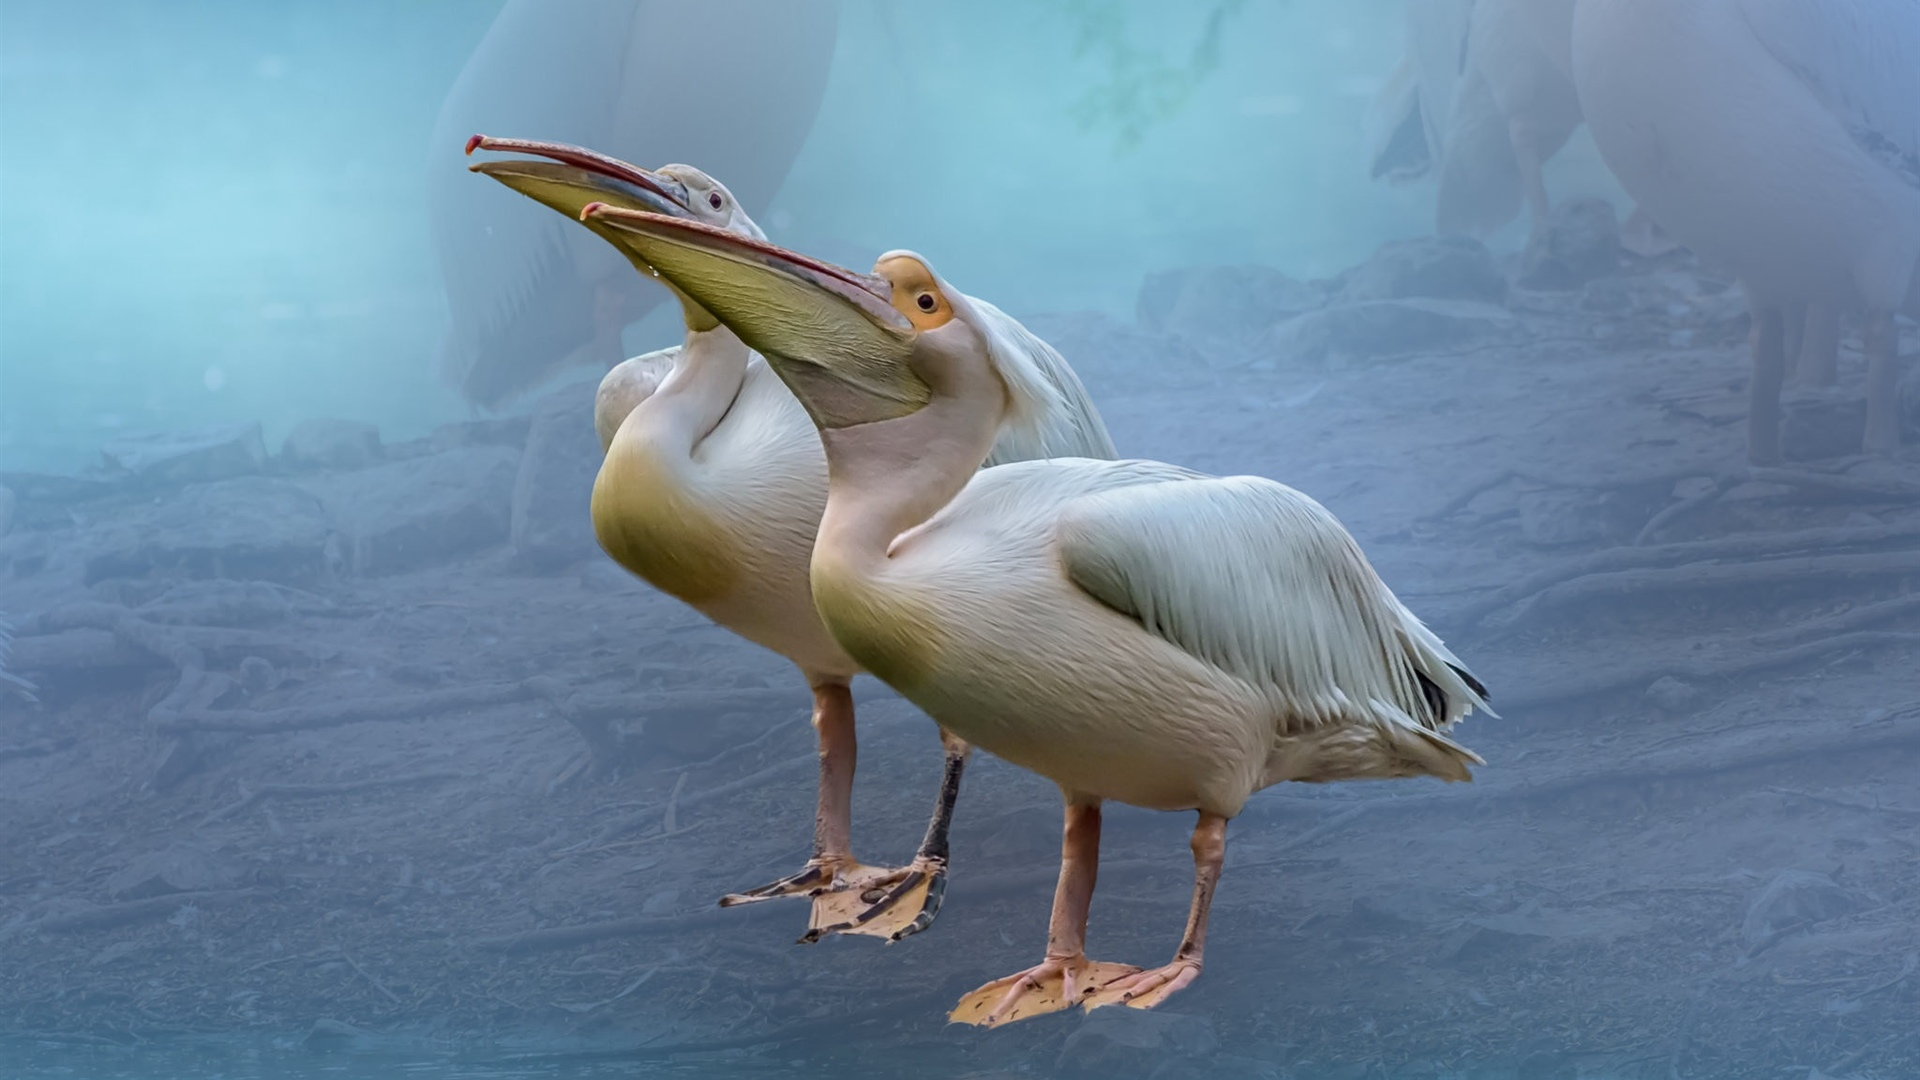 Two pelicans 1920x1080 wallpaper